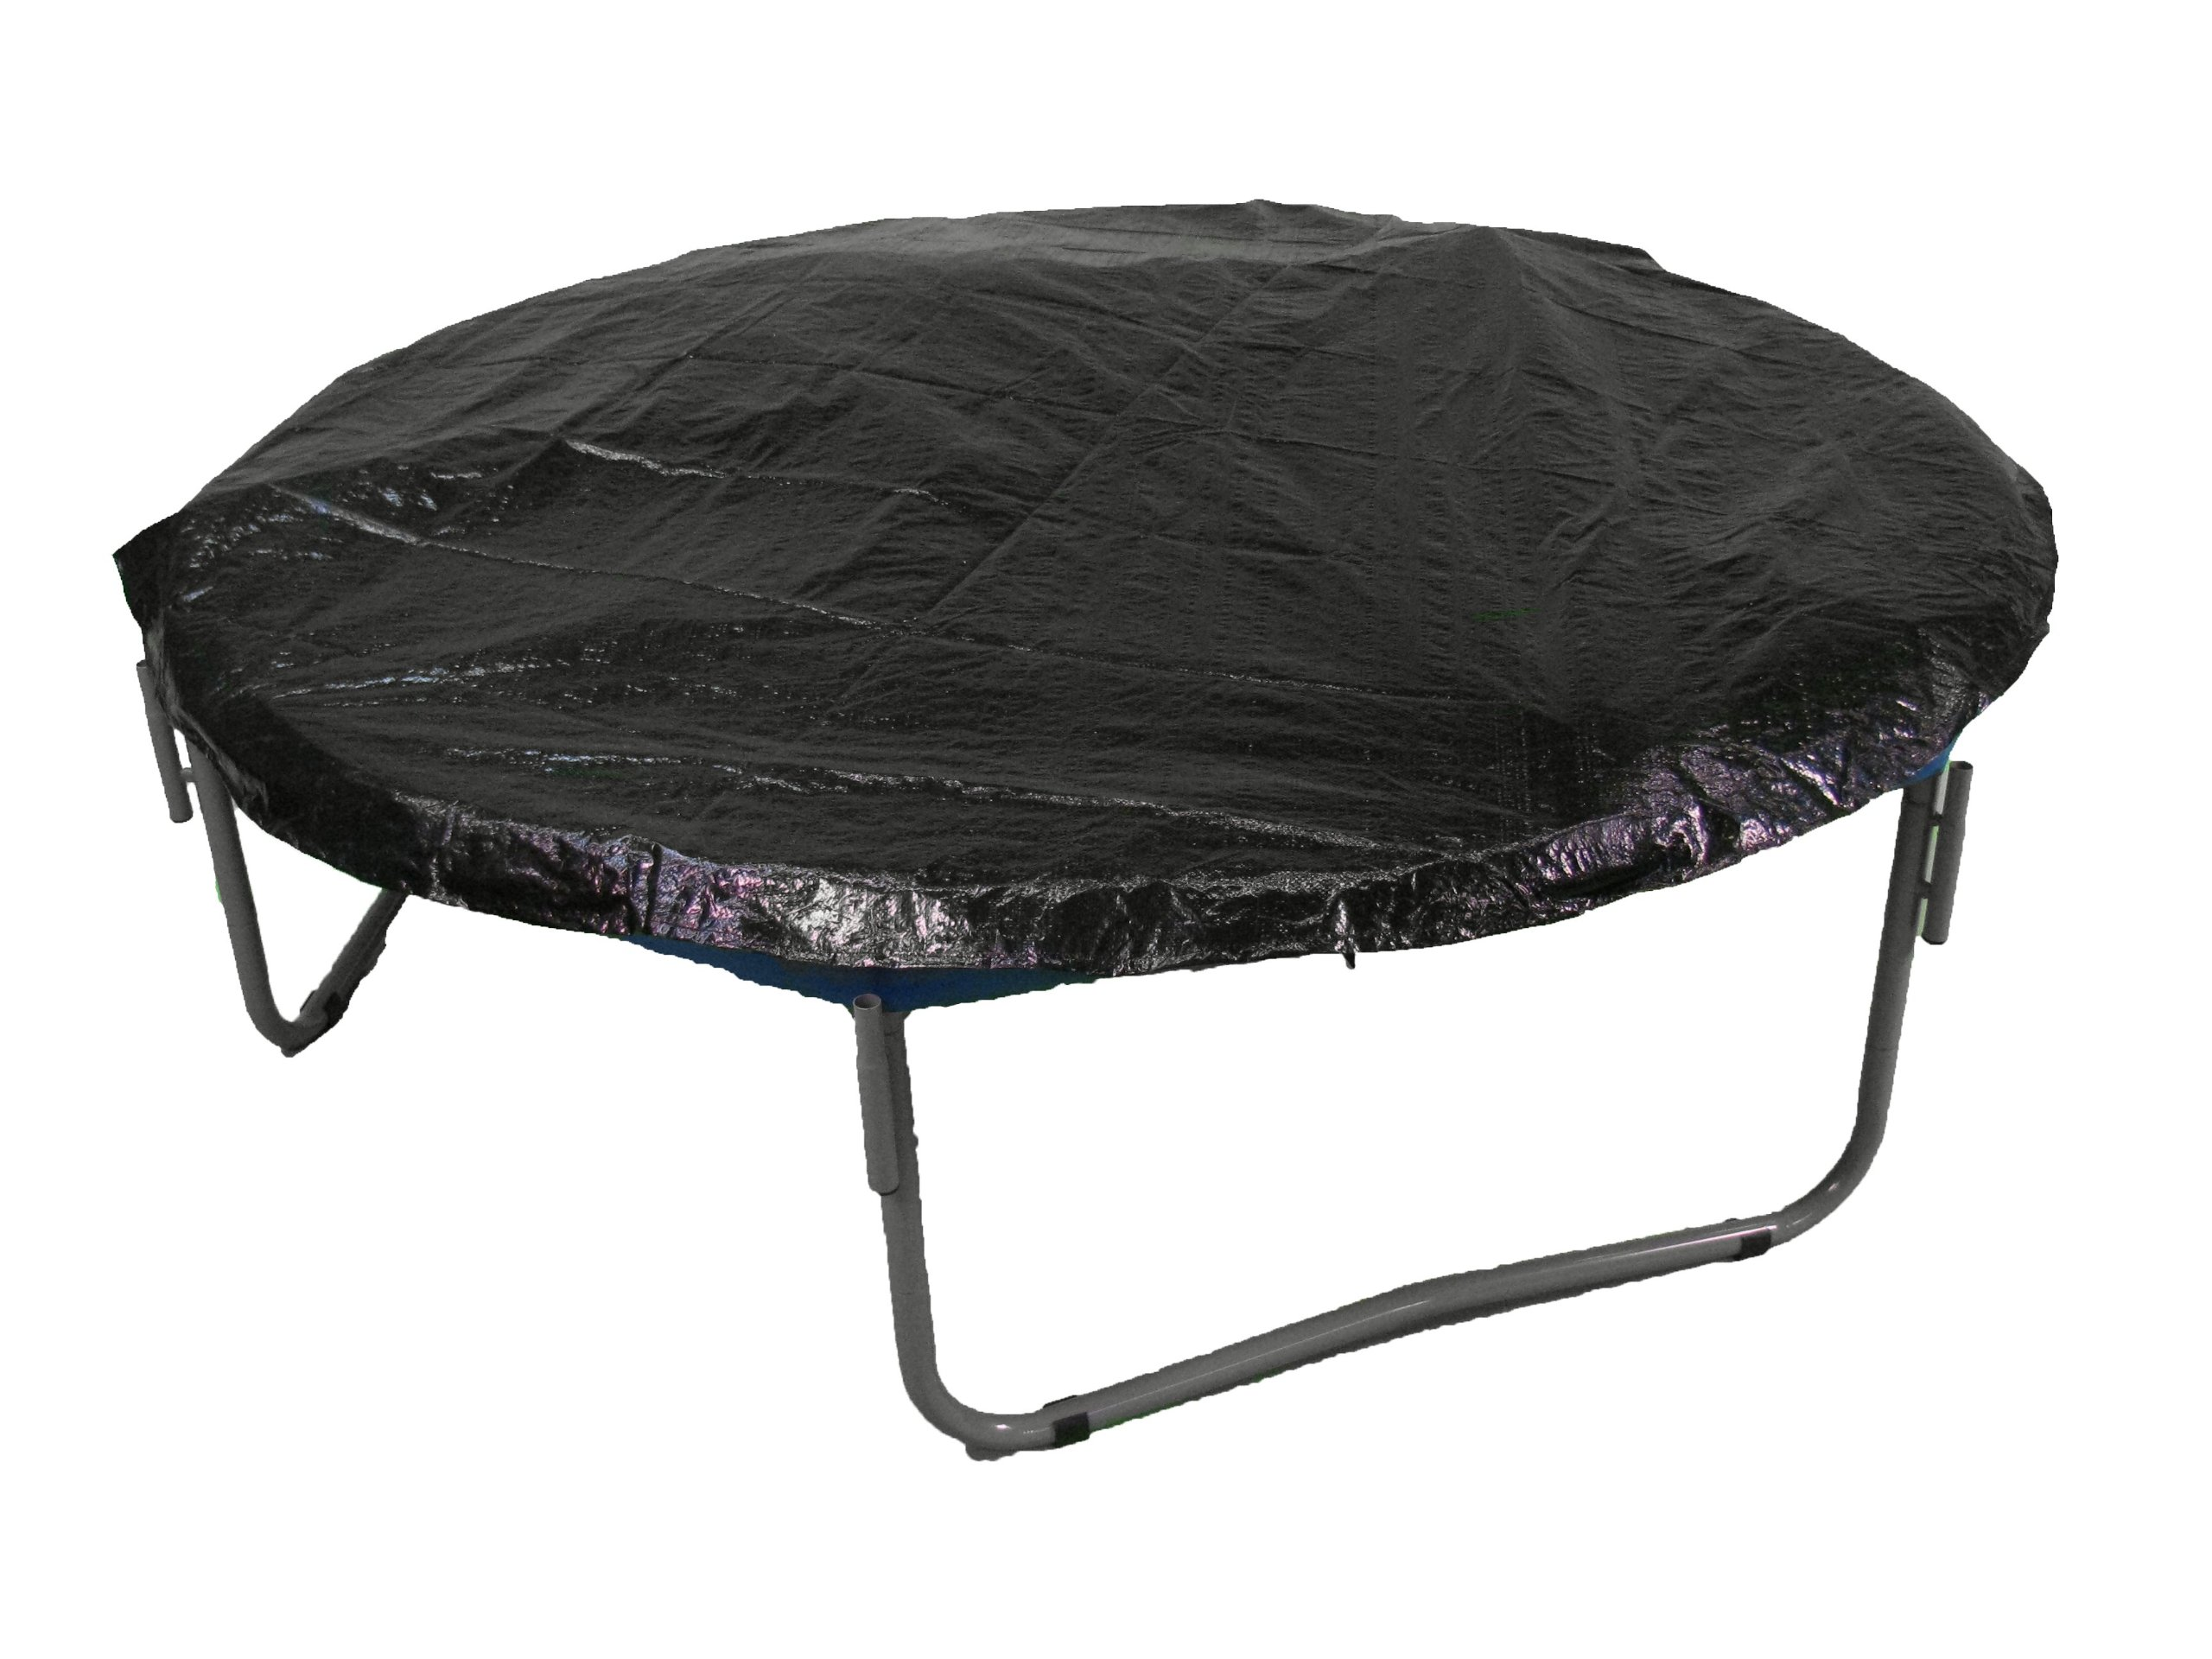 Upper Bounce 10' Trampoline Protection Cover (Weather & Rain Cover) Fits for 10 FT. Round Trampoline Frames - Black by Upper Bounce